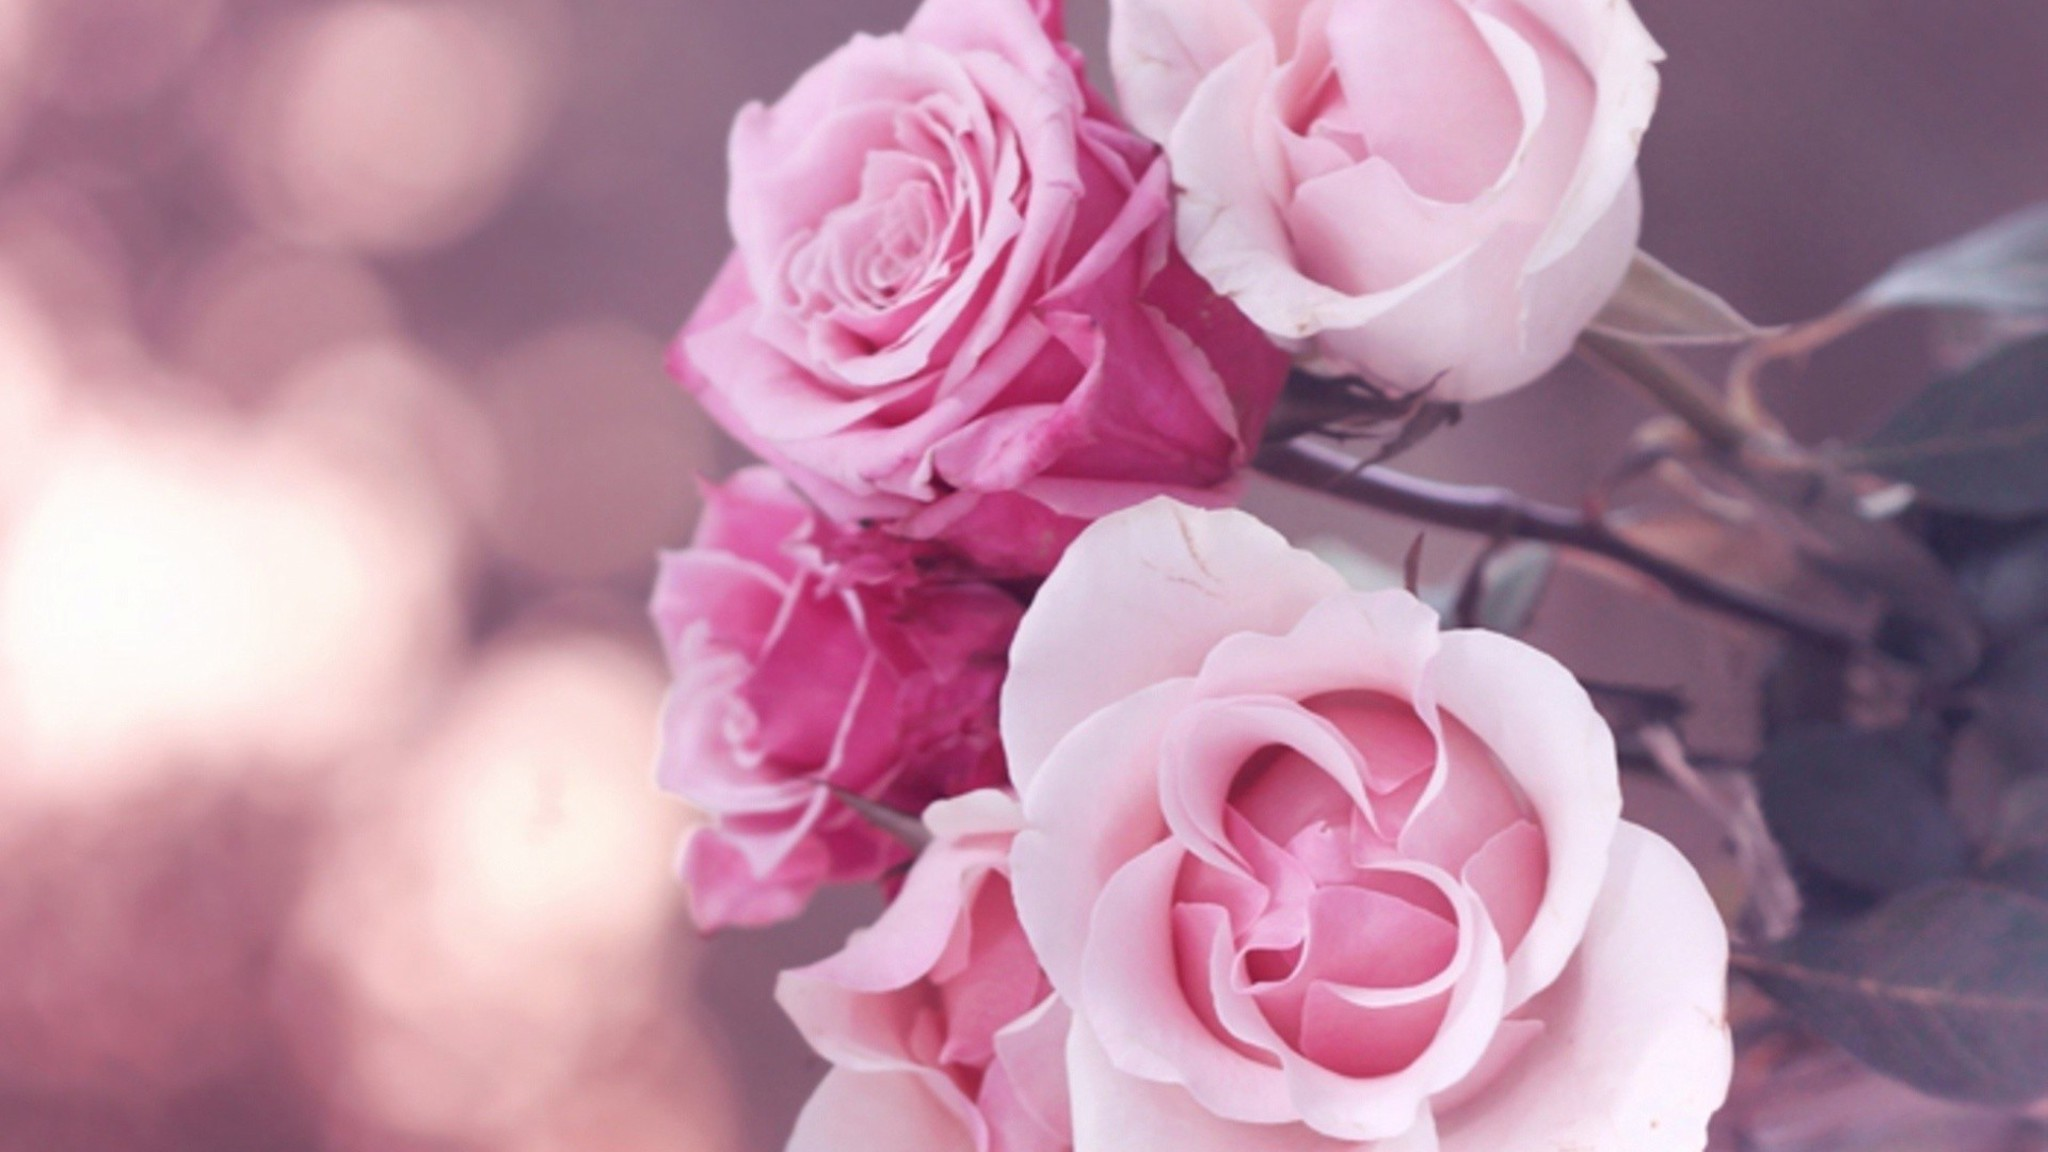 Flowers roses pink rose wallpaper 6809 - Pink rose hd wallpaper ...